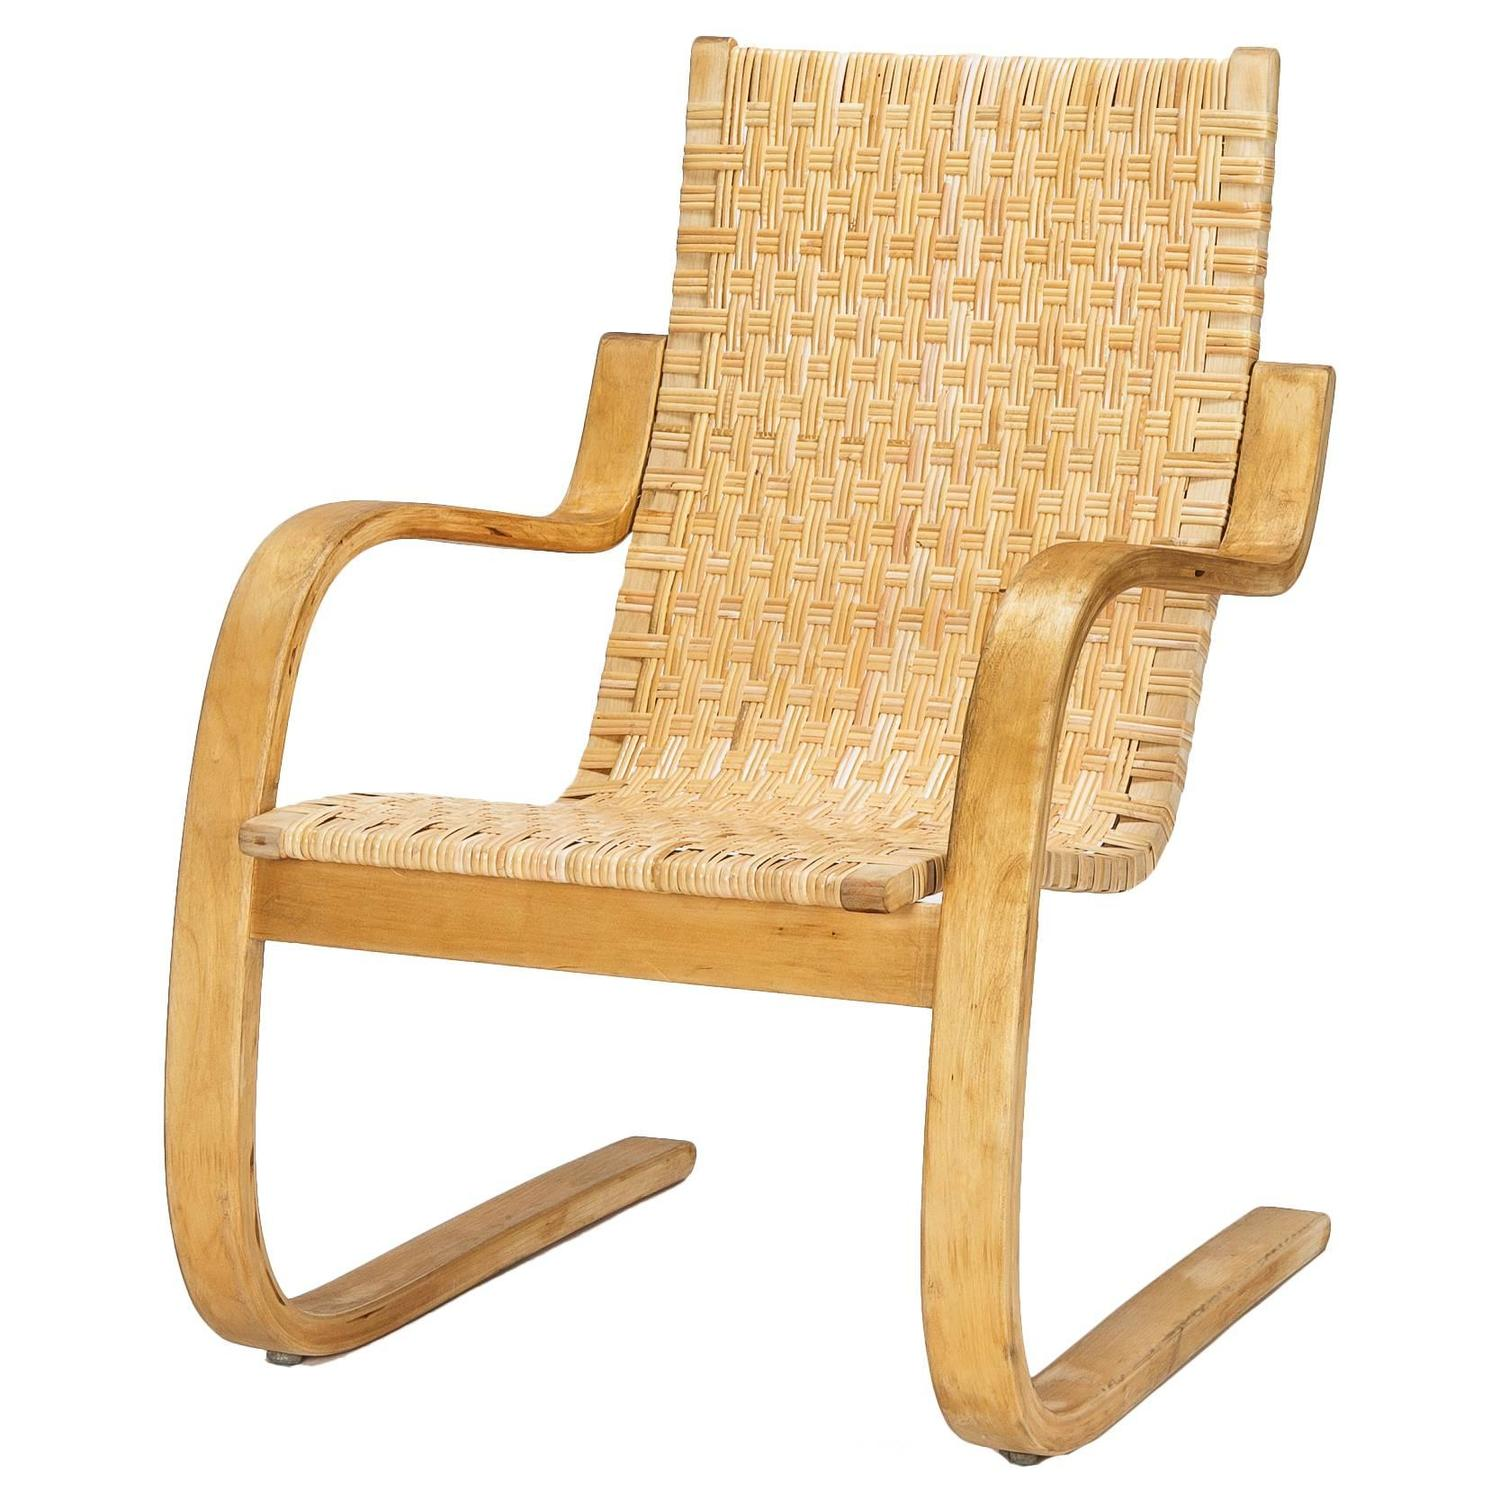 Alvar Aalto Cantilever Chair 406 by Artek in Birch and Cane Webbing For Sale at 1stdibs  sc 1 st  1stDibs : artek chairs - Cheerinfomania.Com